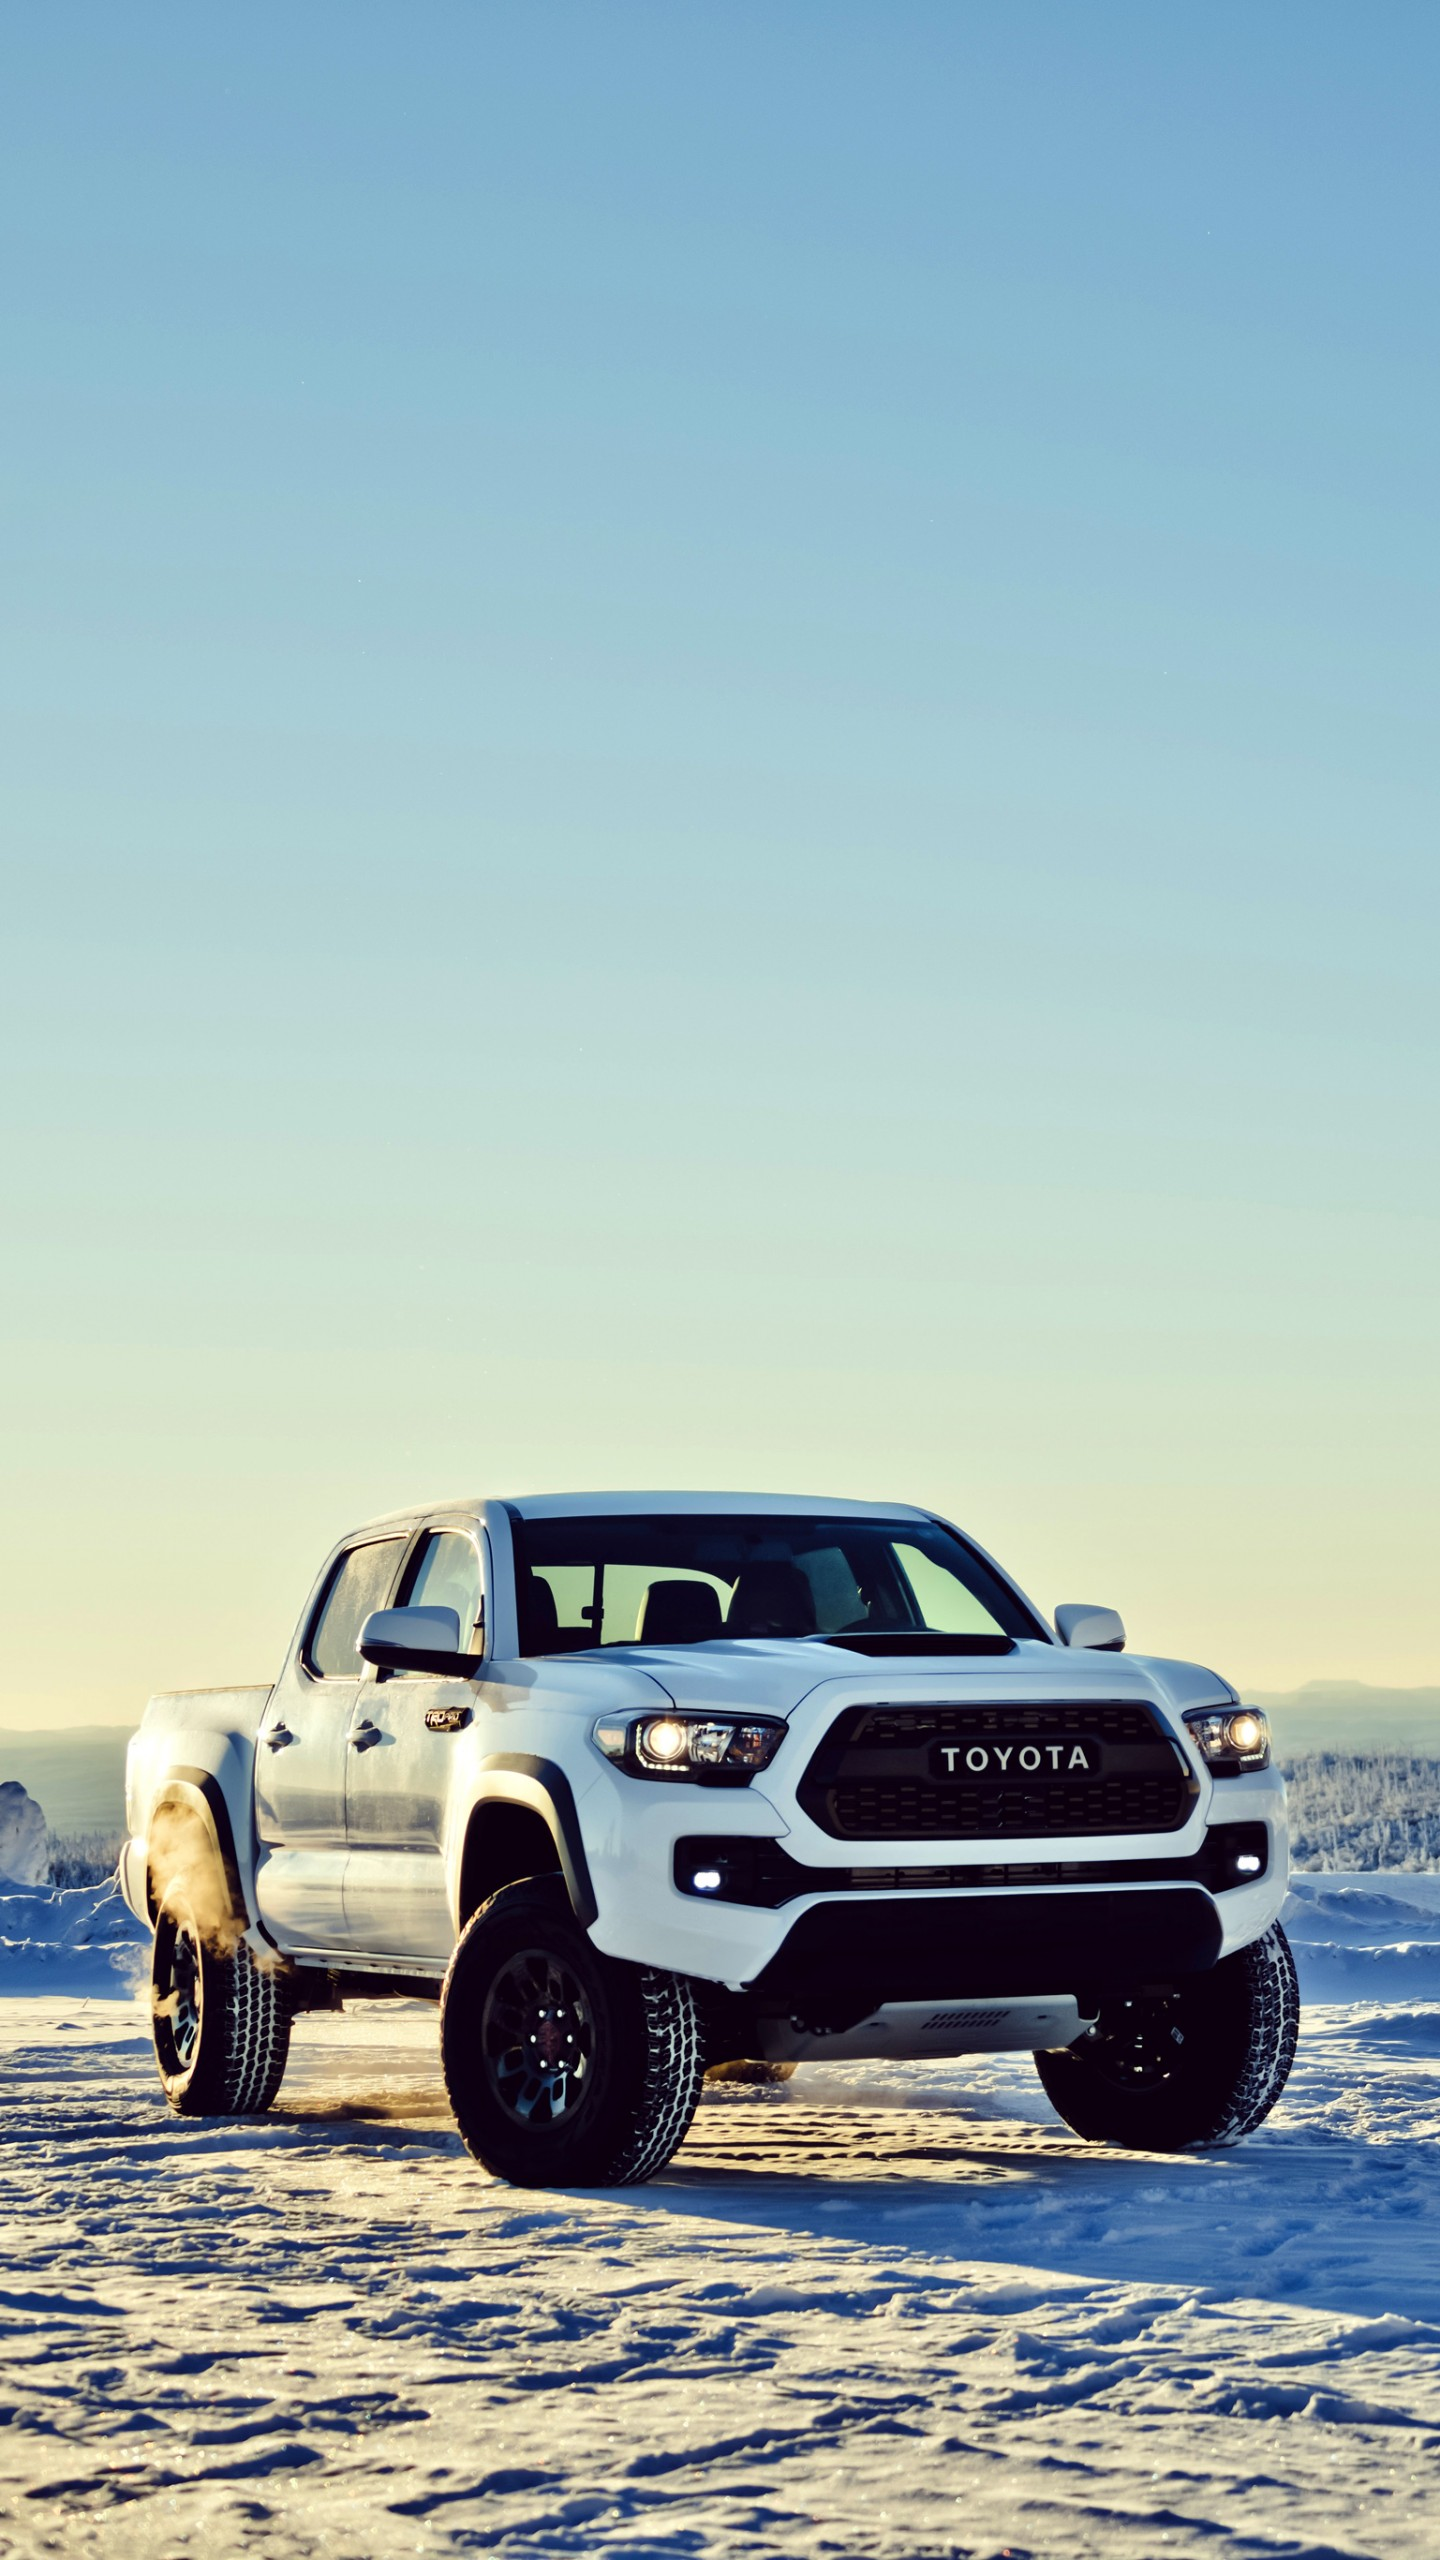 Wallpaper Toyota Tacoma Trd Chicago Auto Show 2016 Off Road White Cars Bikes 8625 Page 3